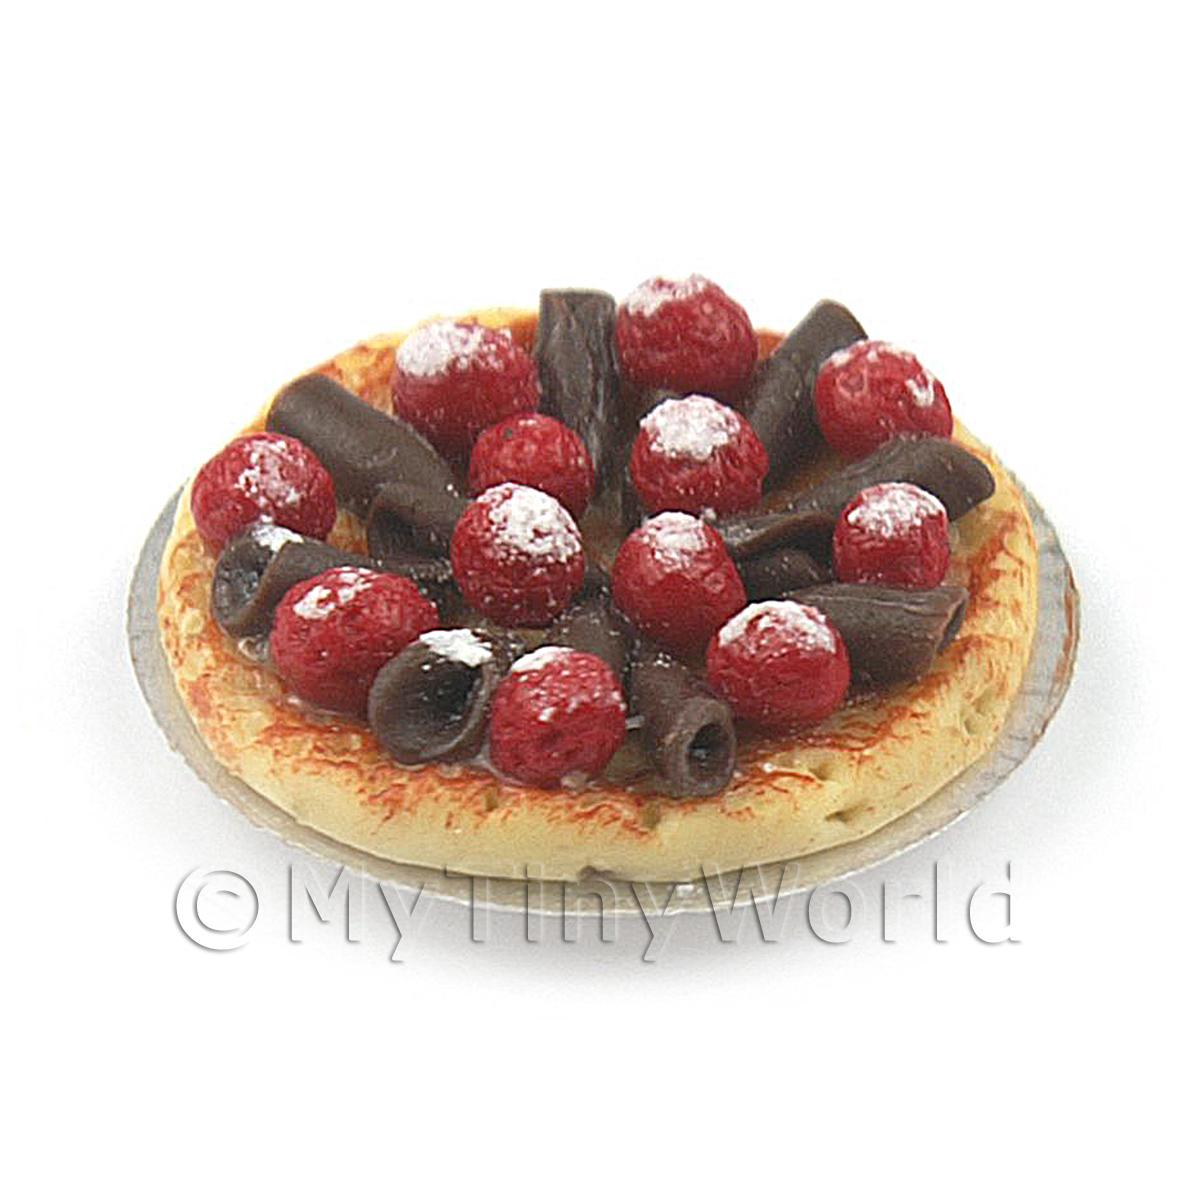 Dolls House Miniature Sugar Dusted Strawberry And Chocolate Tart